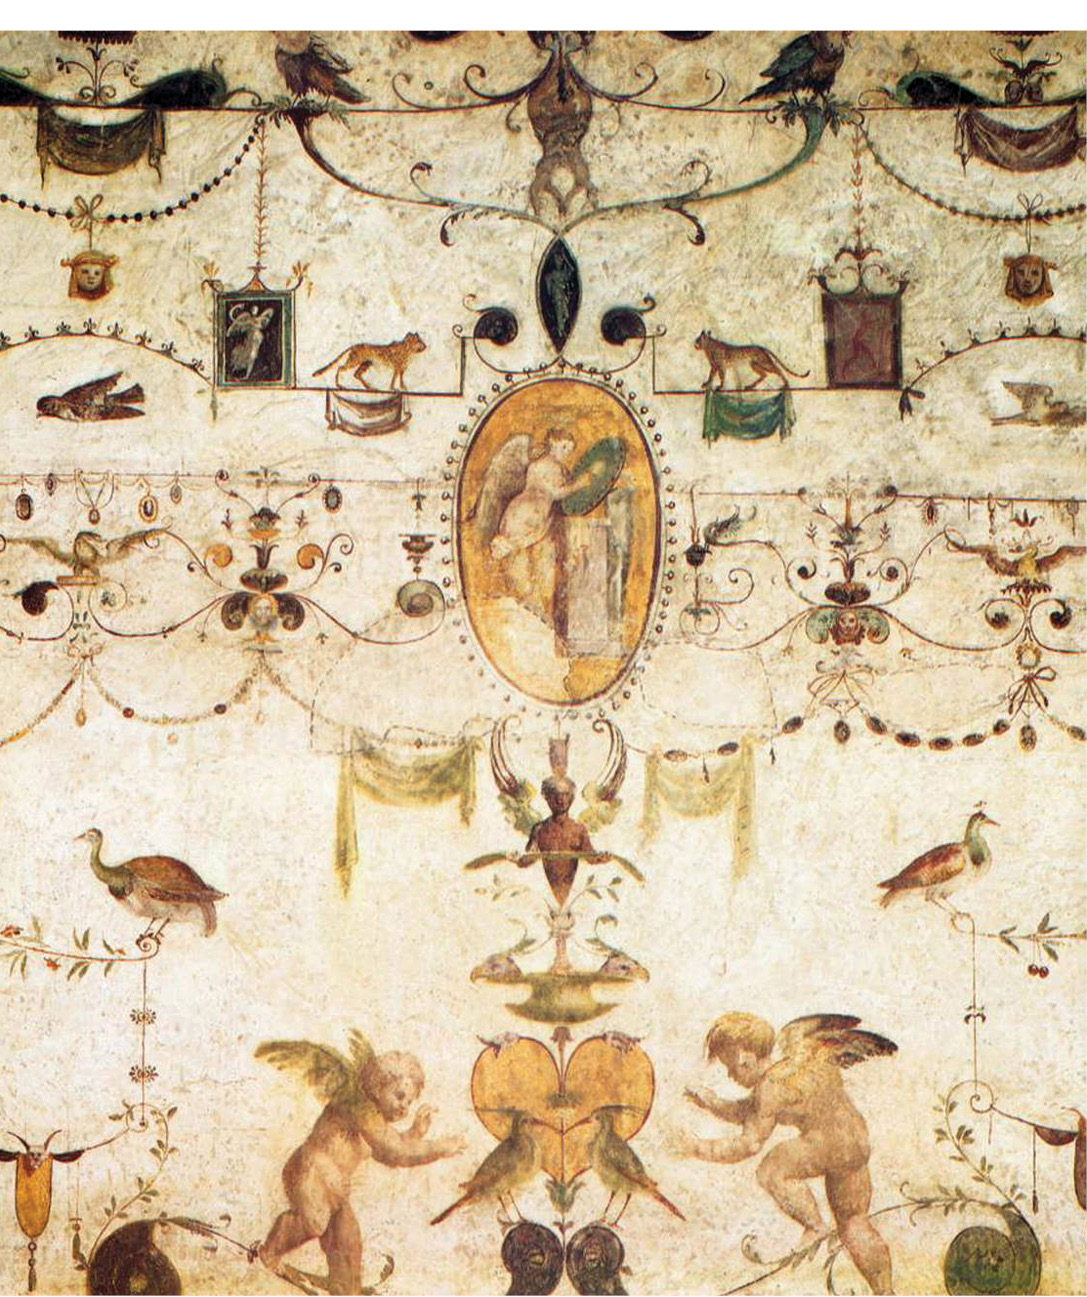 top Raphael's pupils decorated several Vatican rooms, including the Loggetta of Cardinal Bibbiena, after his designs inspired by ancient painting. They show fanciful grotesque designs, as well as scenes from the life of Apollo. above Fresco decoration painted in 1516-1517, by Giovanni da Udine, one of Raphael's pupils, in the Loggetta.